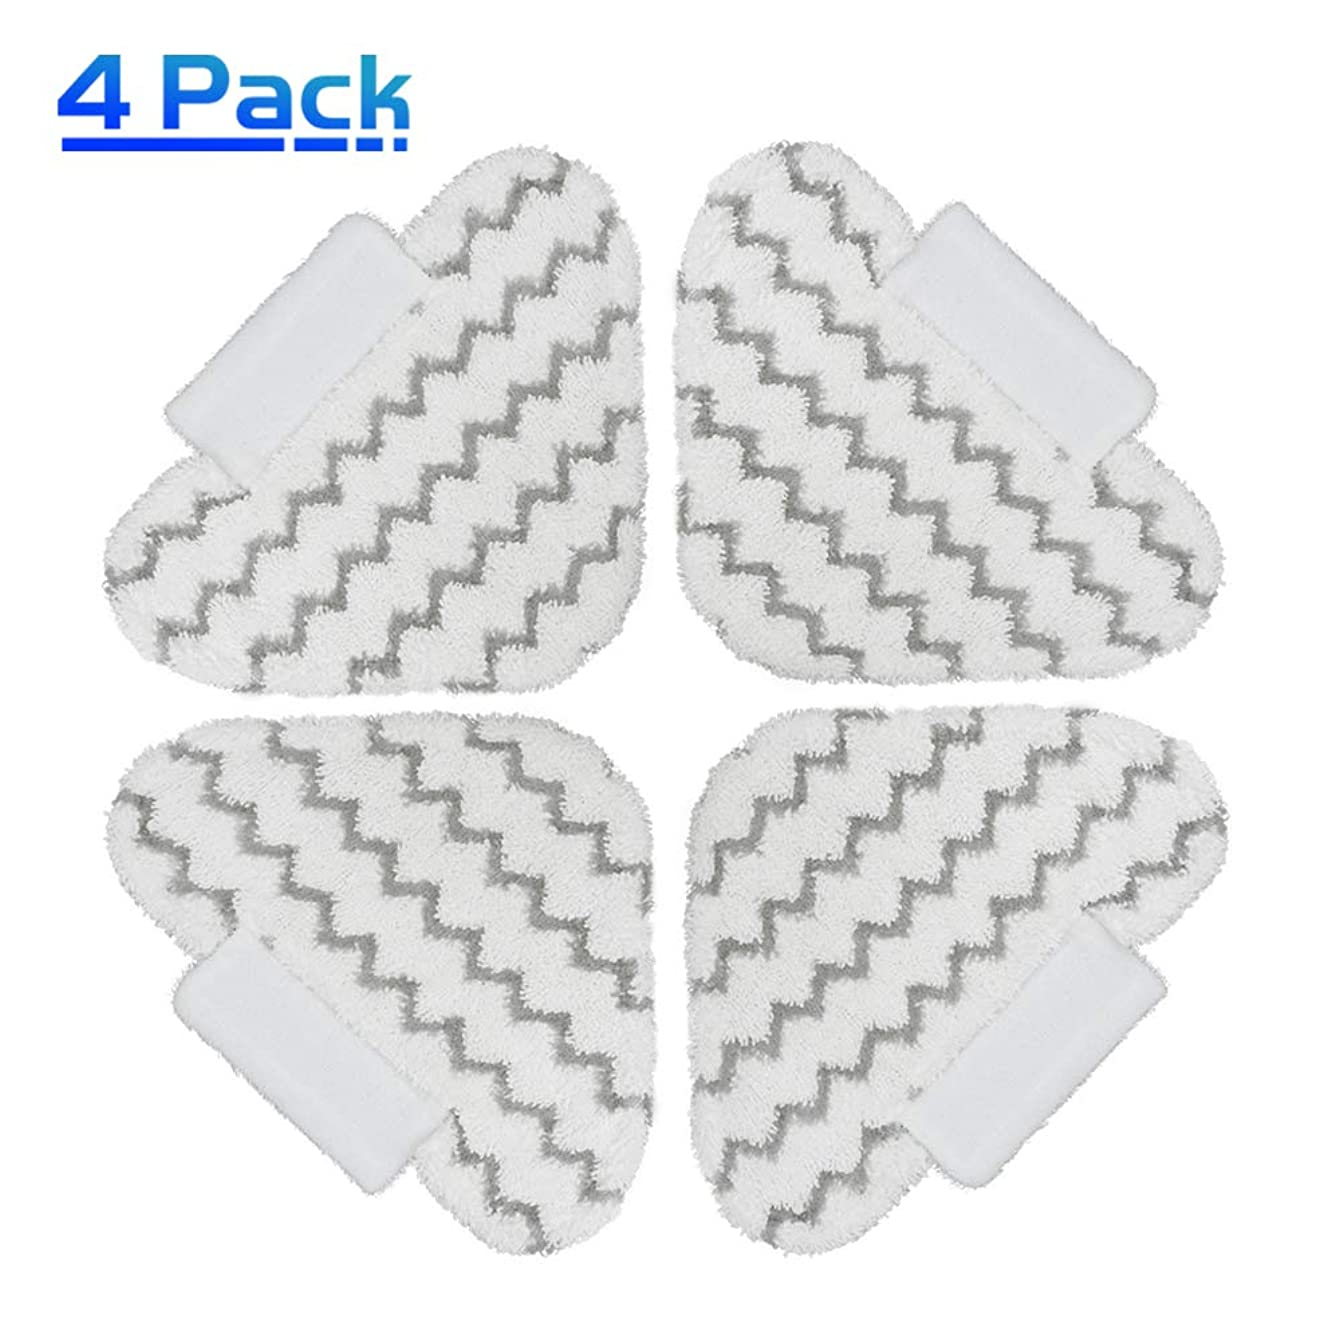 X Home Triangle Steam Mop Replacement Pads for Shark Genius S5003D Hard Floor Cleaning System & Lift-Away Pro Steam Pocket Mop S3973 S3973D S5002 S6001 S6002 Washable Microfiber Dirt Grip Pads (4 pcs)